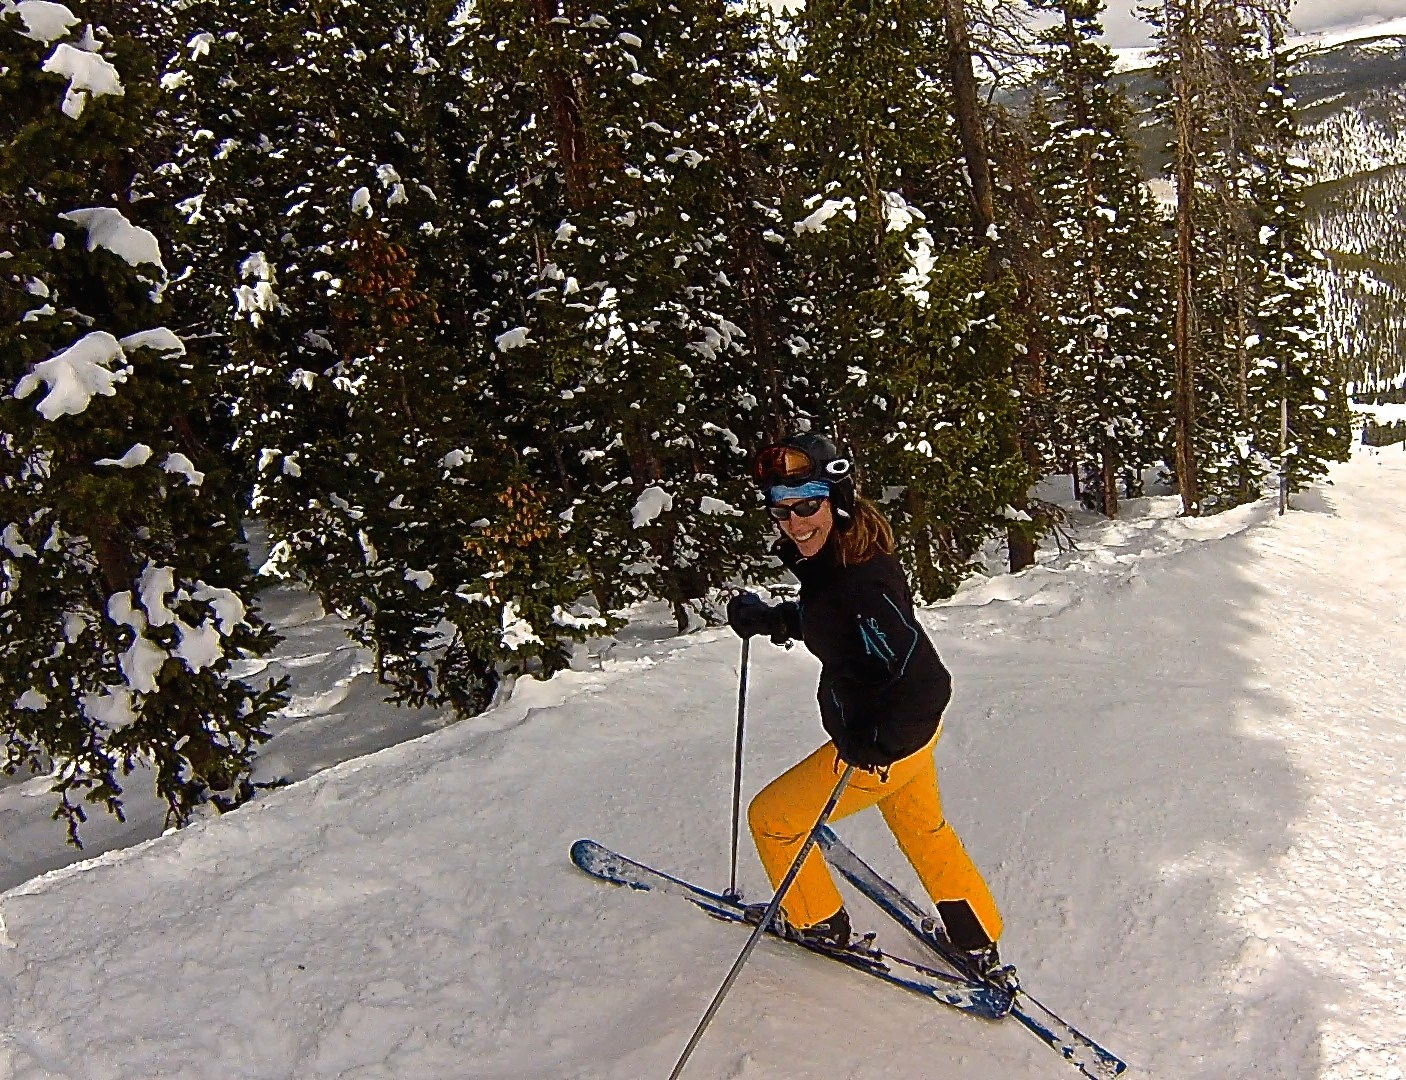 Gratitude: Back on the slopes at Winter Park, Colorado, April 2014